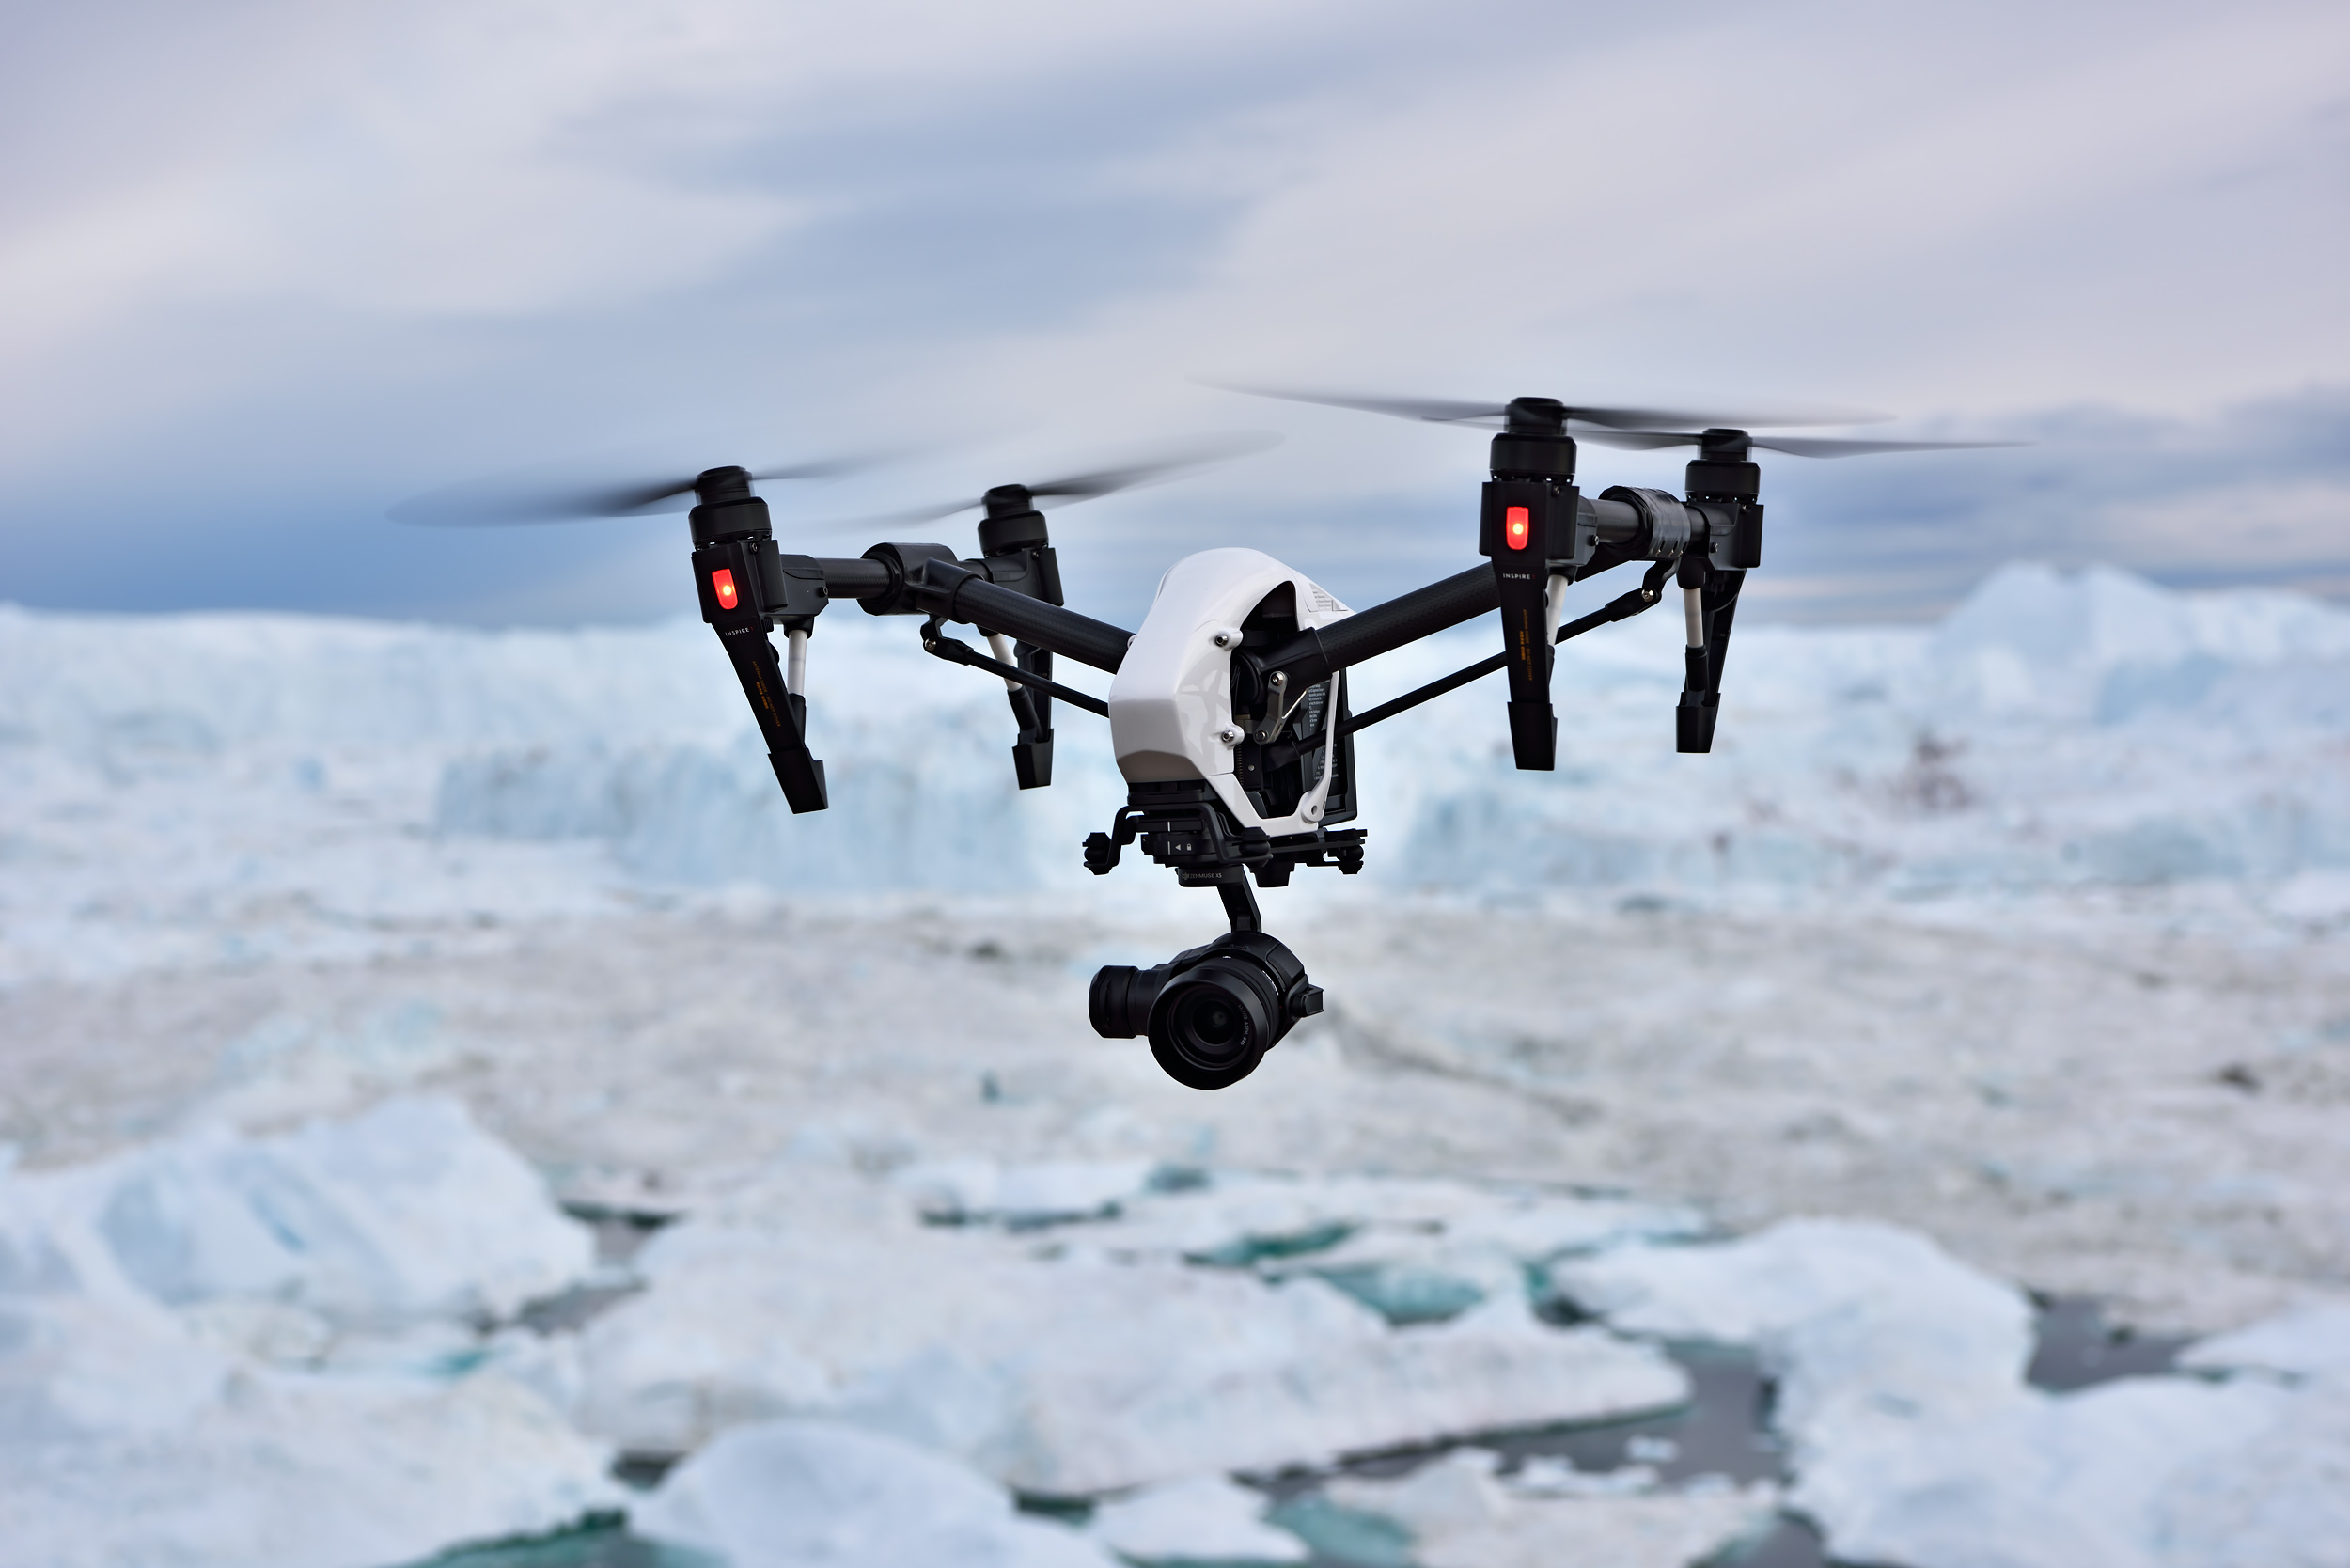 The multicopter returns safely from its mission in the Ilulissat Icefjord.